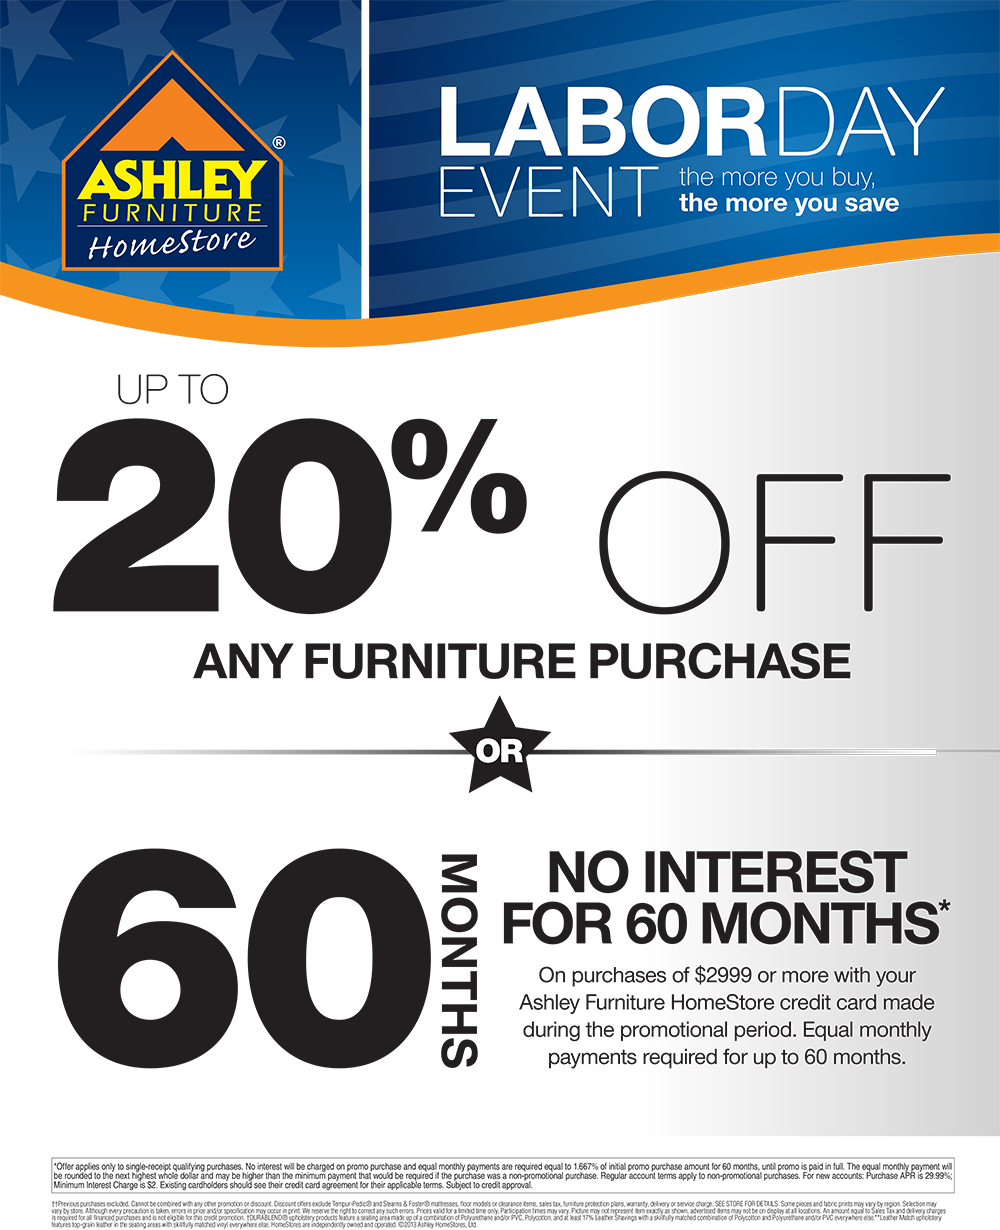 labor day event going on right now at ashleyfurniture in richland wa august 20 2013. Black Bedroom Furniture Sets. Home Design Ideas